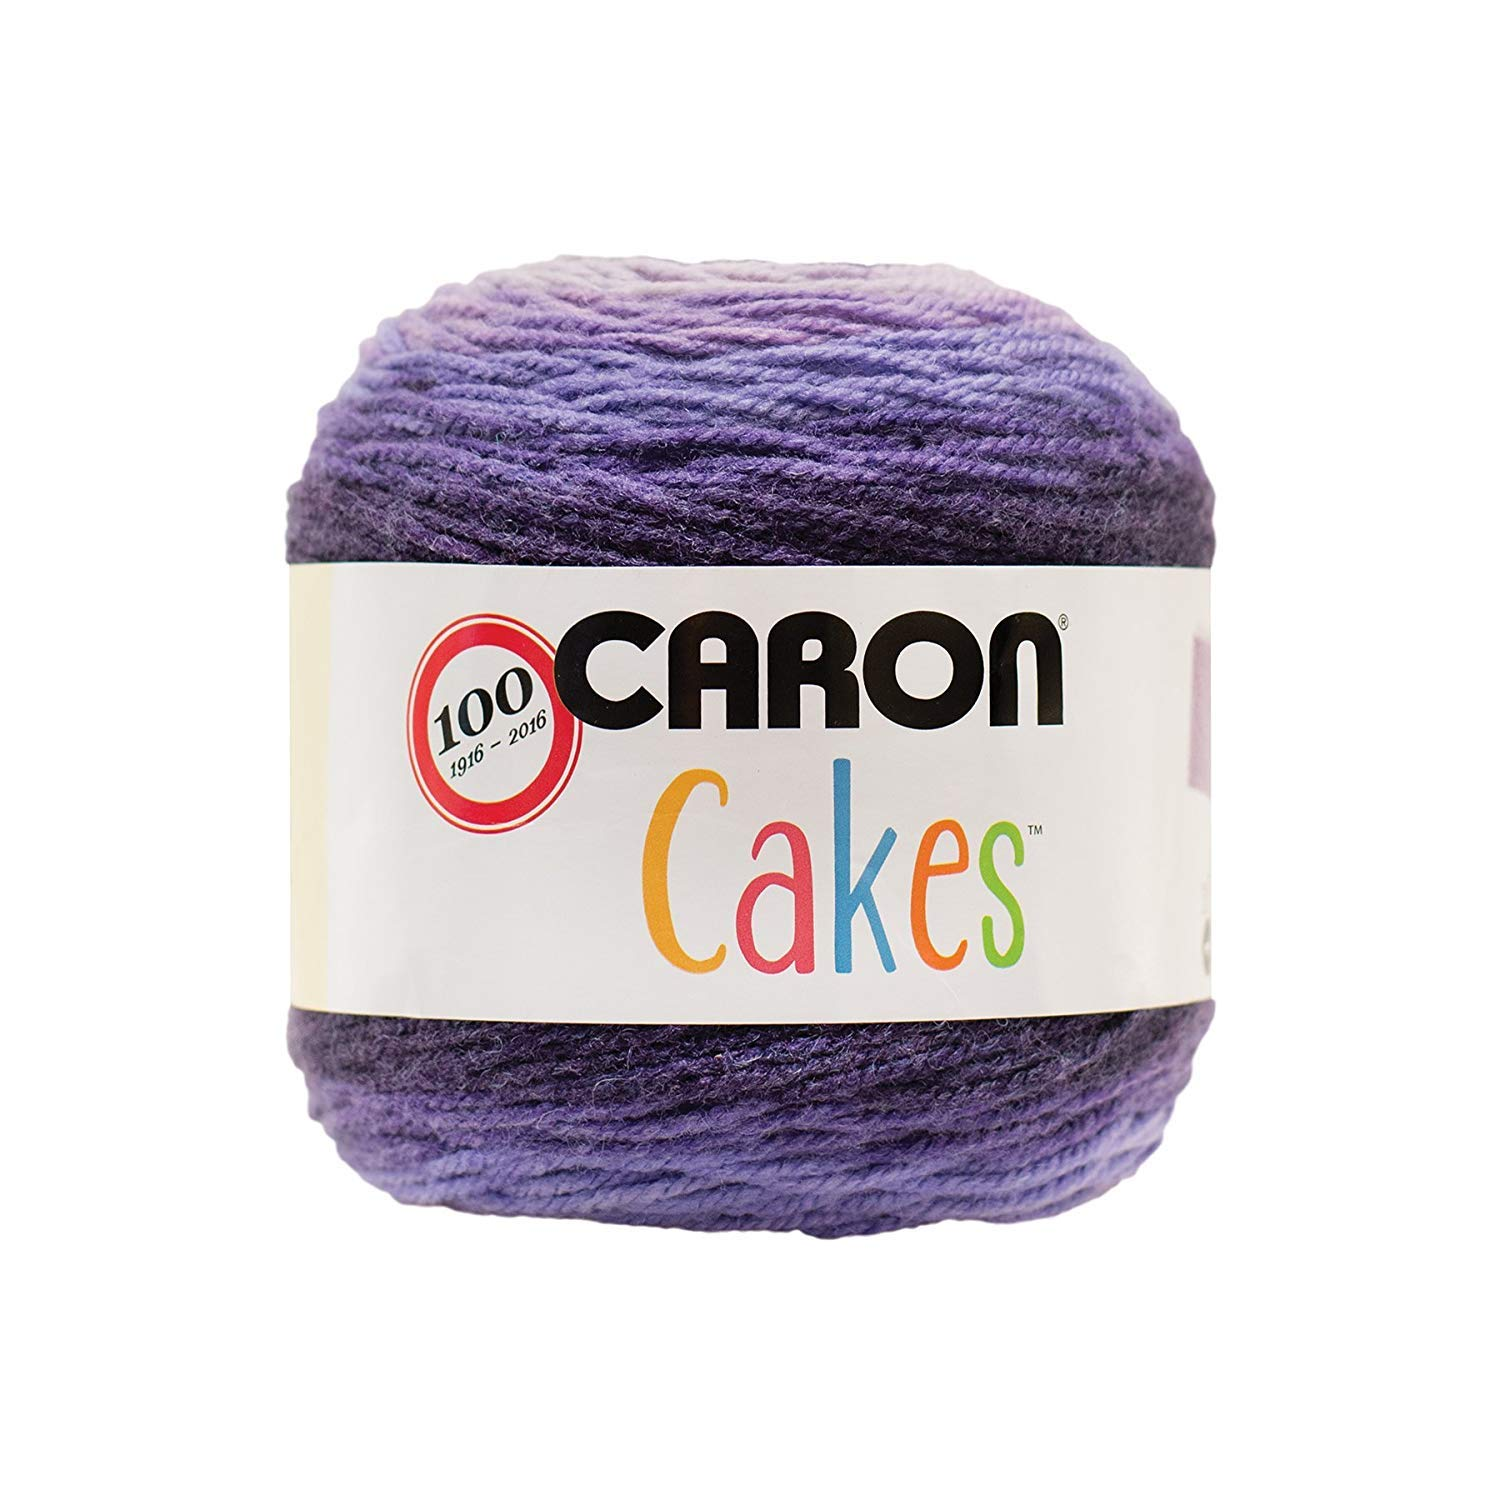 Crochet Color Bumbleberry Yarnspirations Caron Cakes Knit